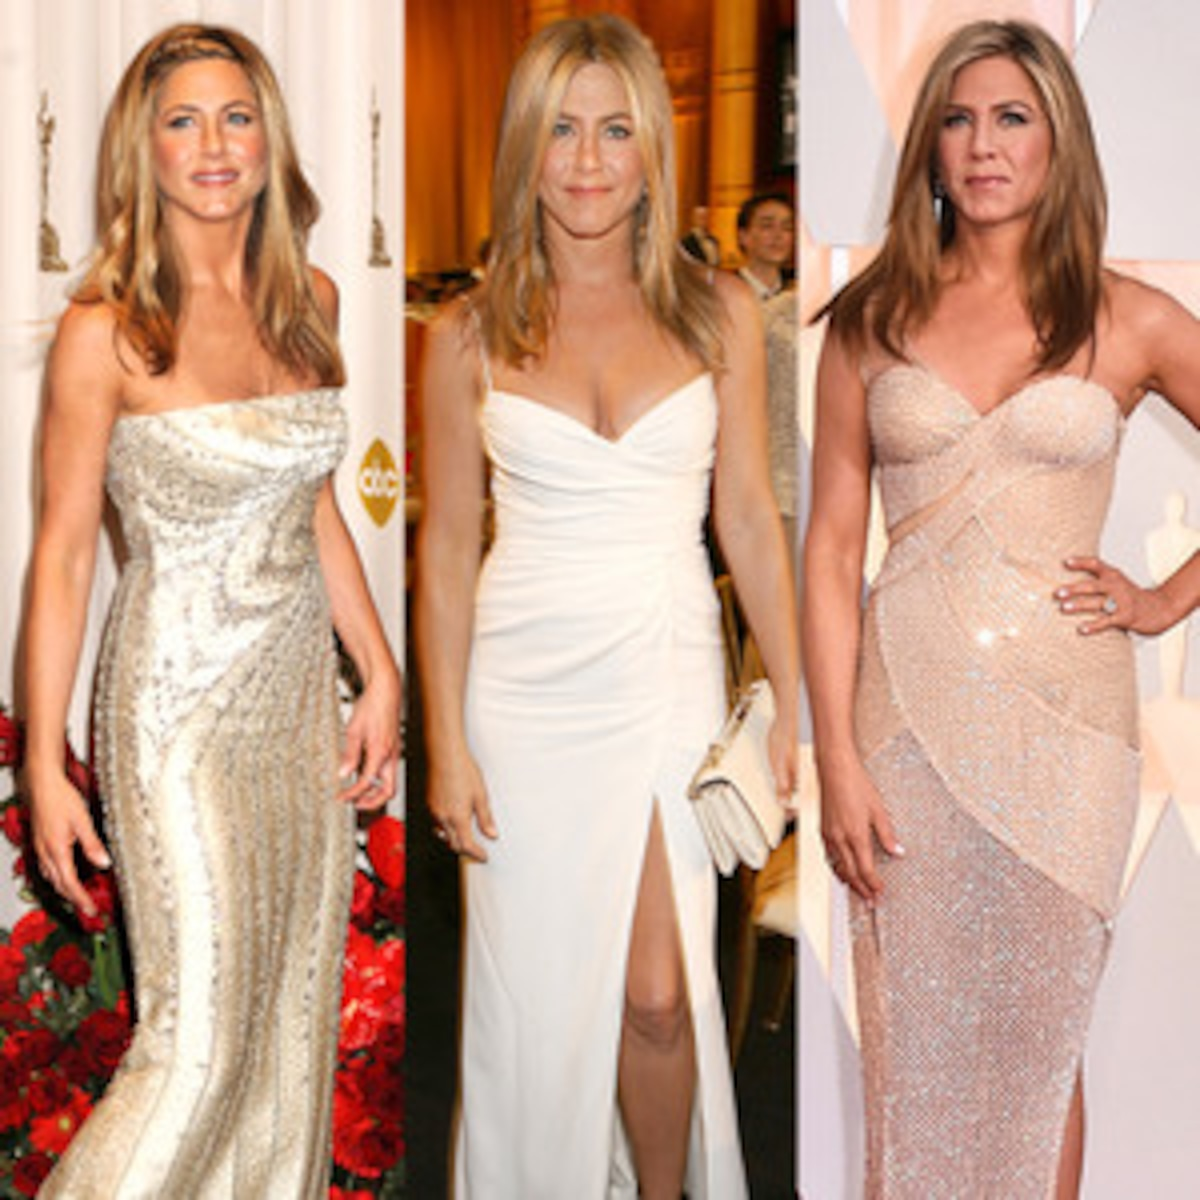 Jen Aniston S Wedding Dress What We Think The Bride Wore E News